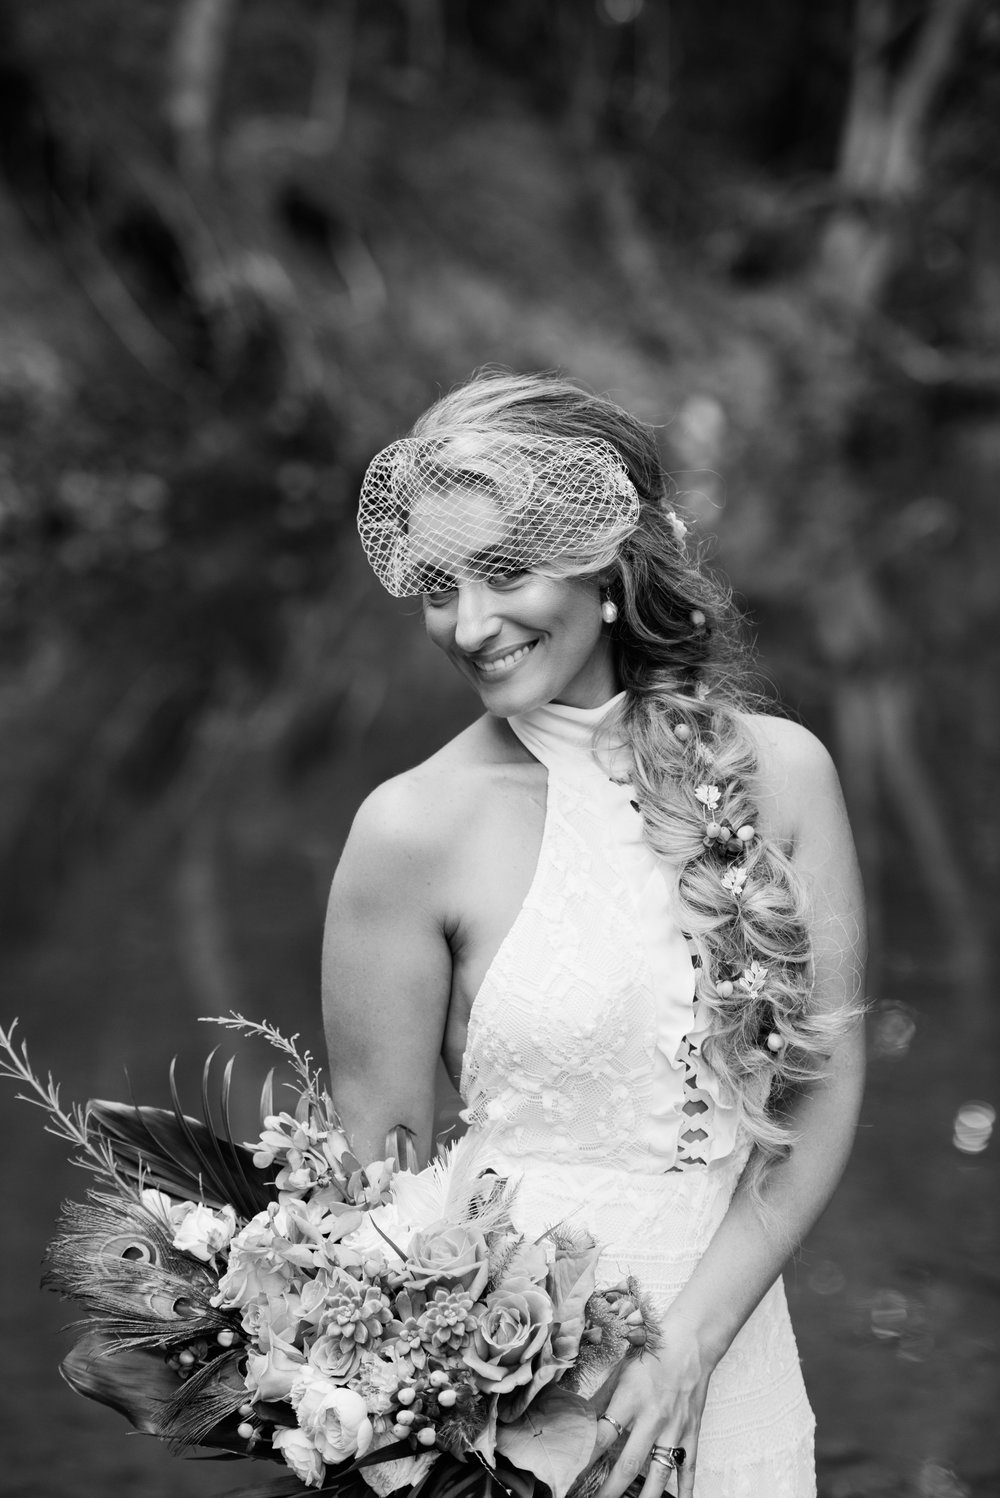 leah and cliff- skyla sage photography   wedding photographer, byron bay wedding and family photographer, tweed heads wedding and family photography-224.jpg